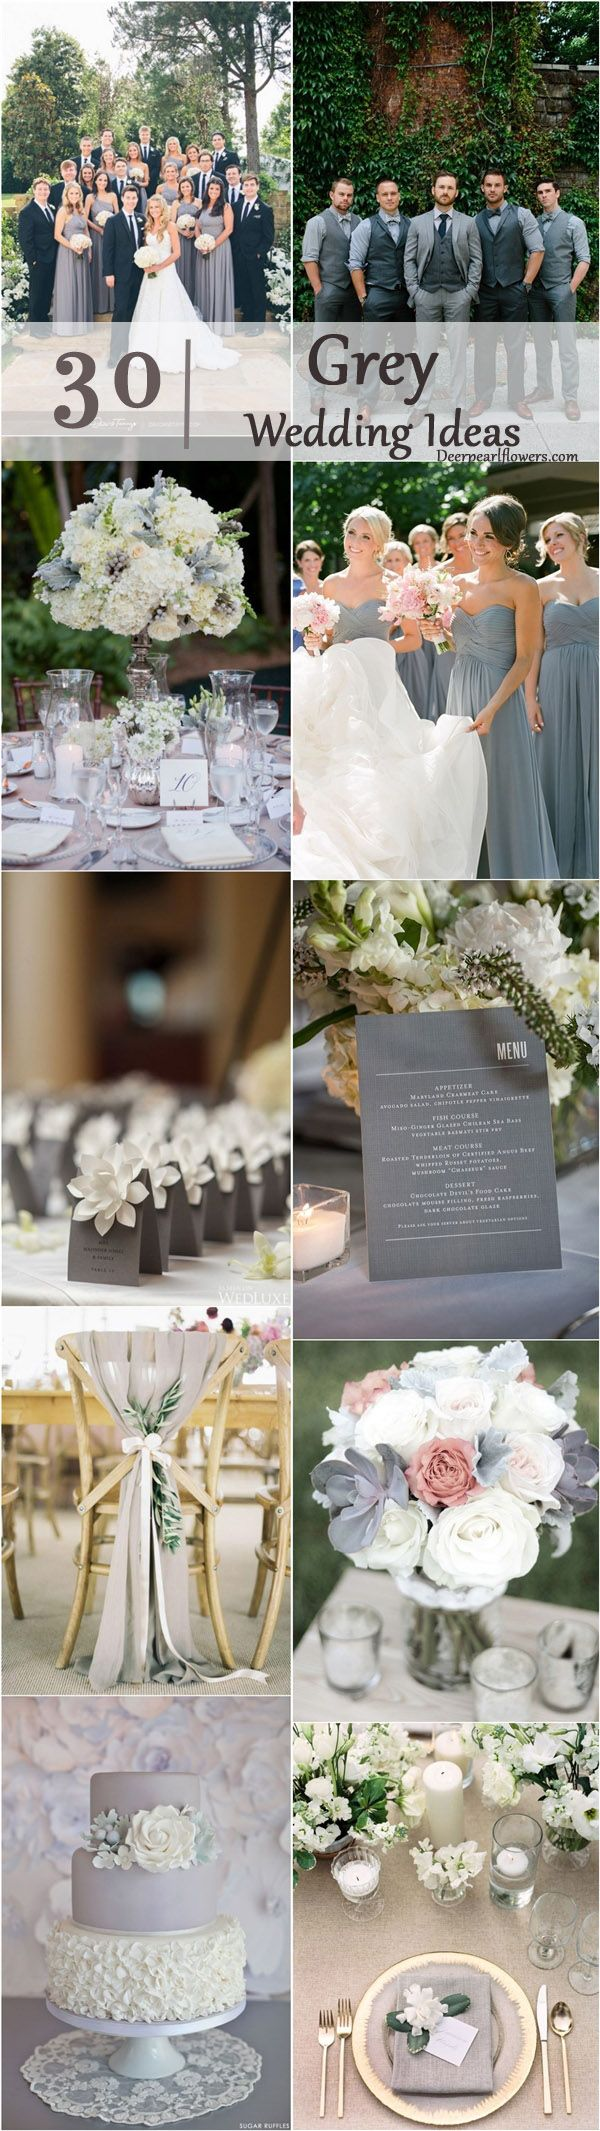 Gray color dress suitable for wedding